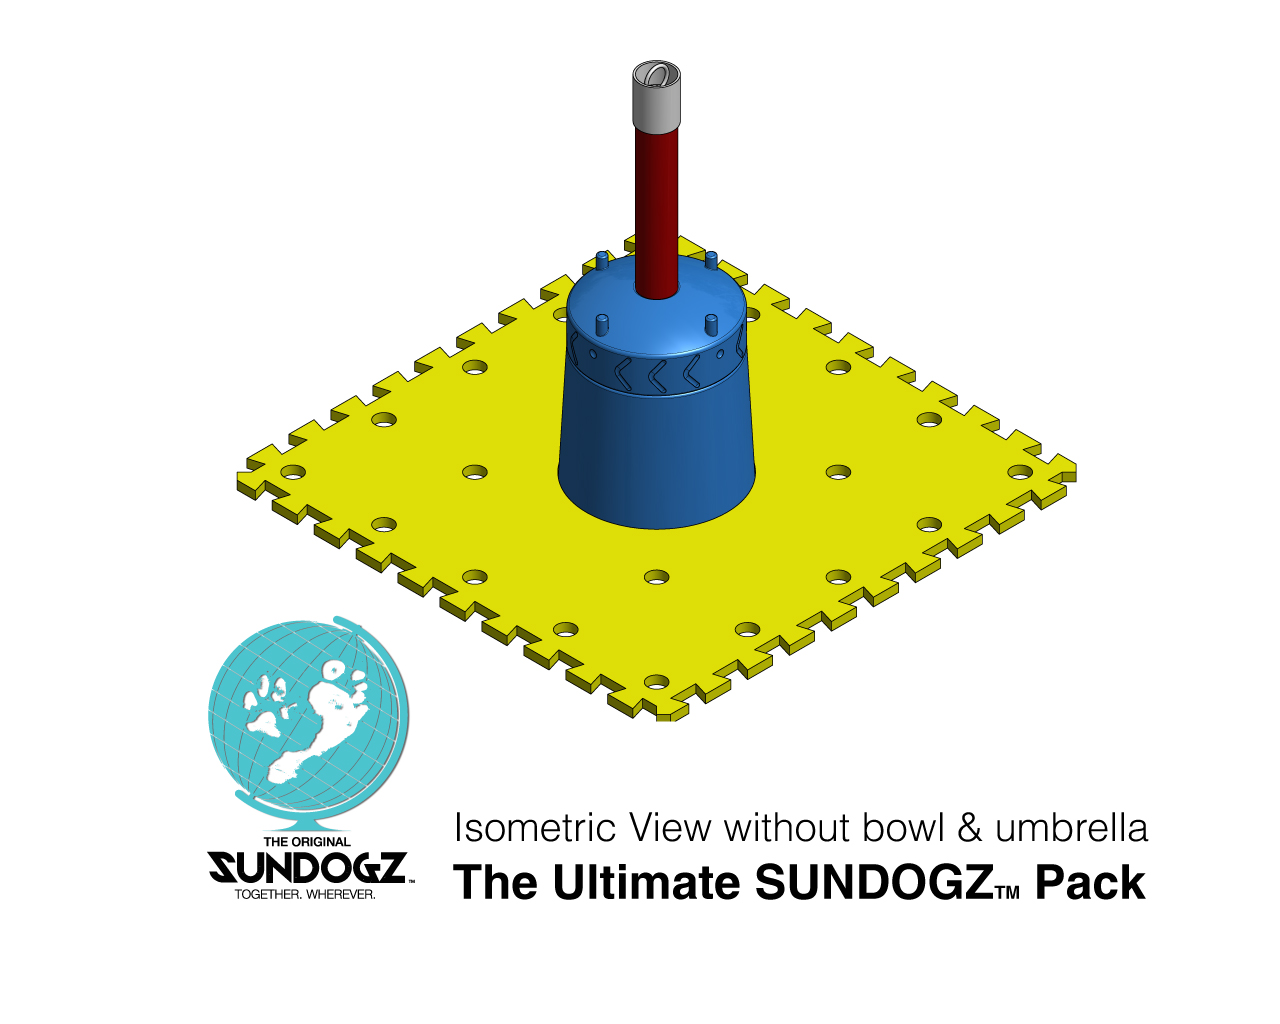 Ultimate SUNDOGZ Pack without accessories